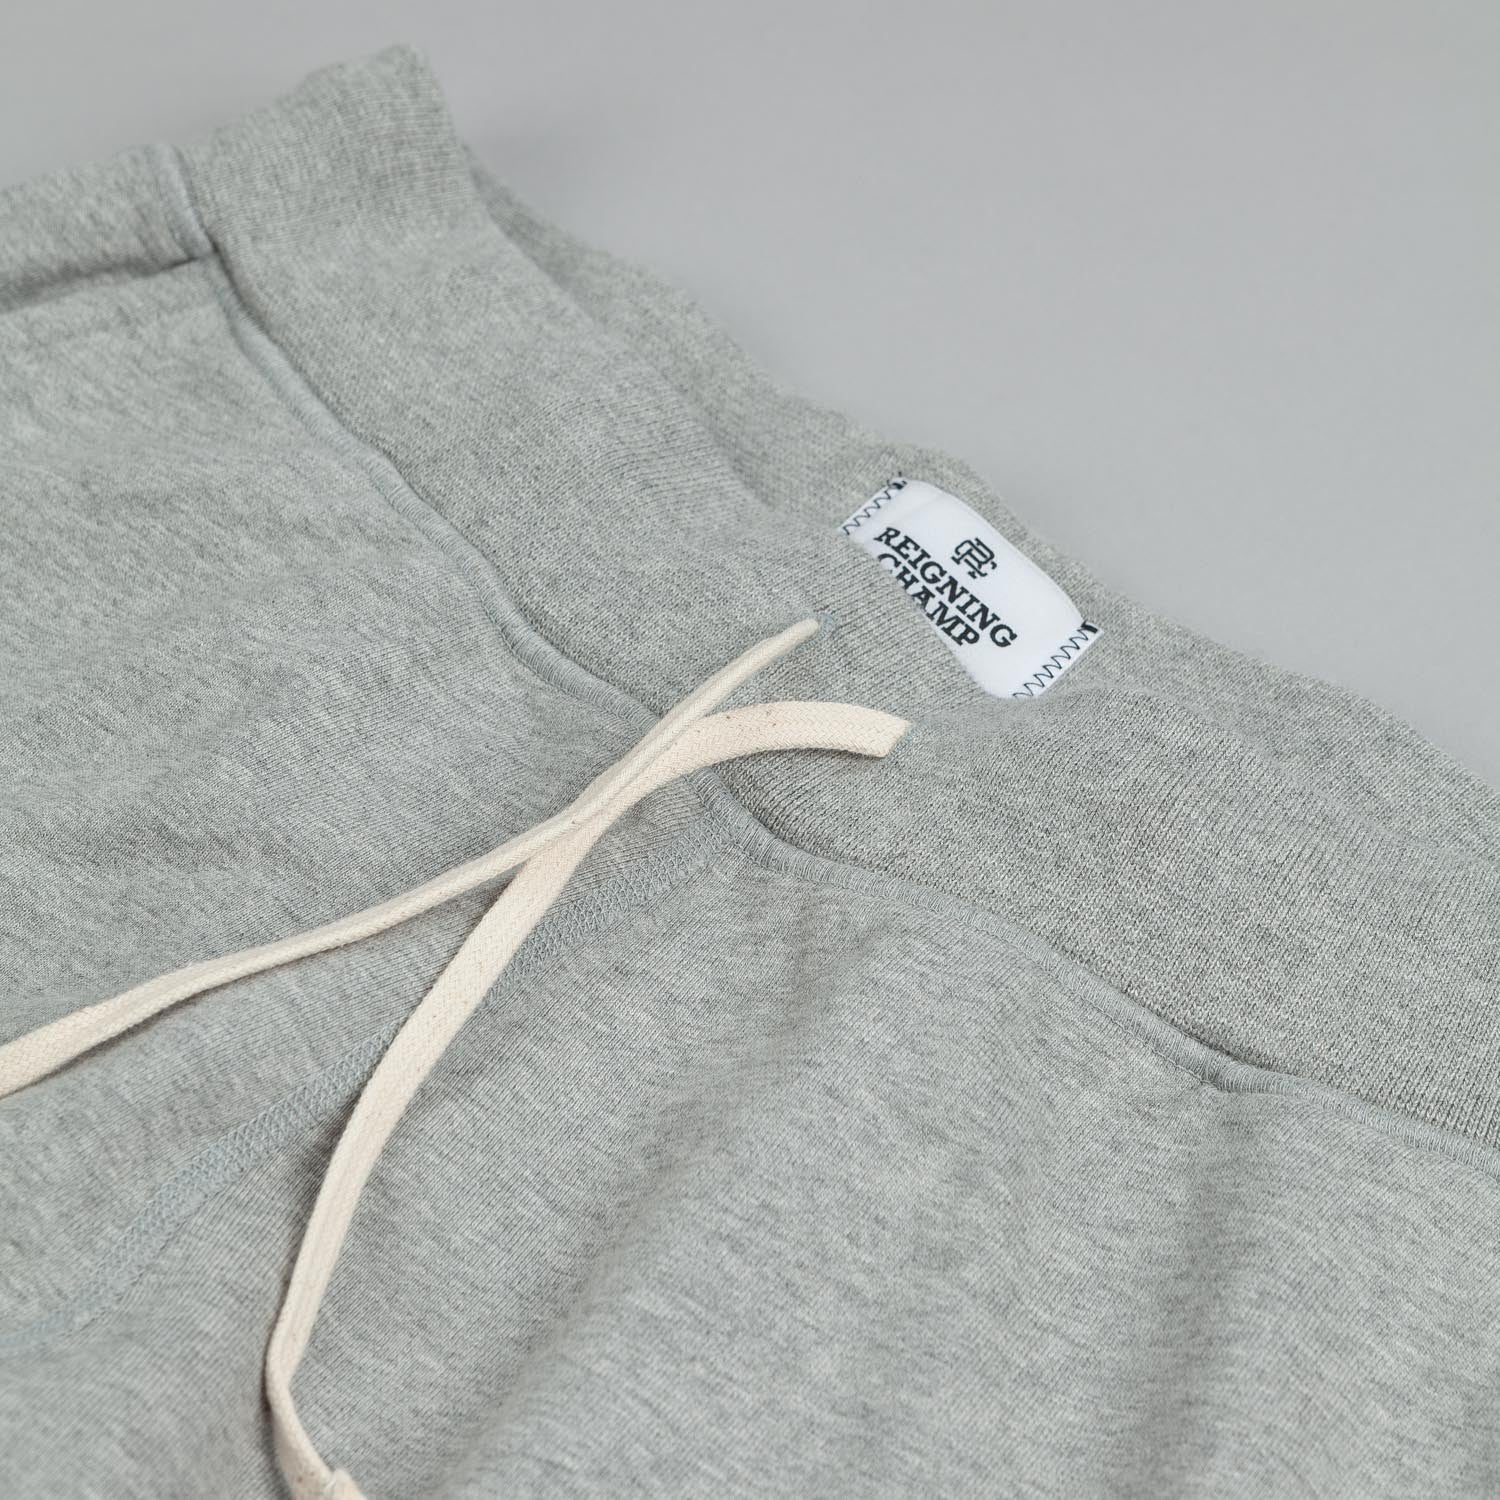 Reigning Champ Core Sweatpant Heather Grey